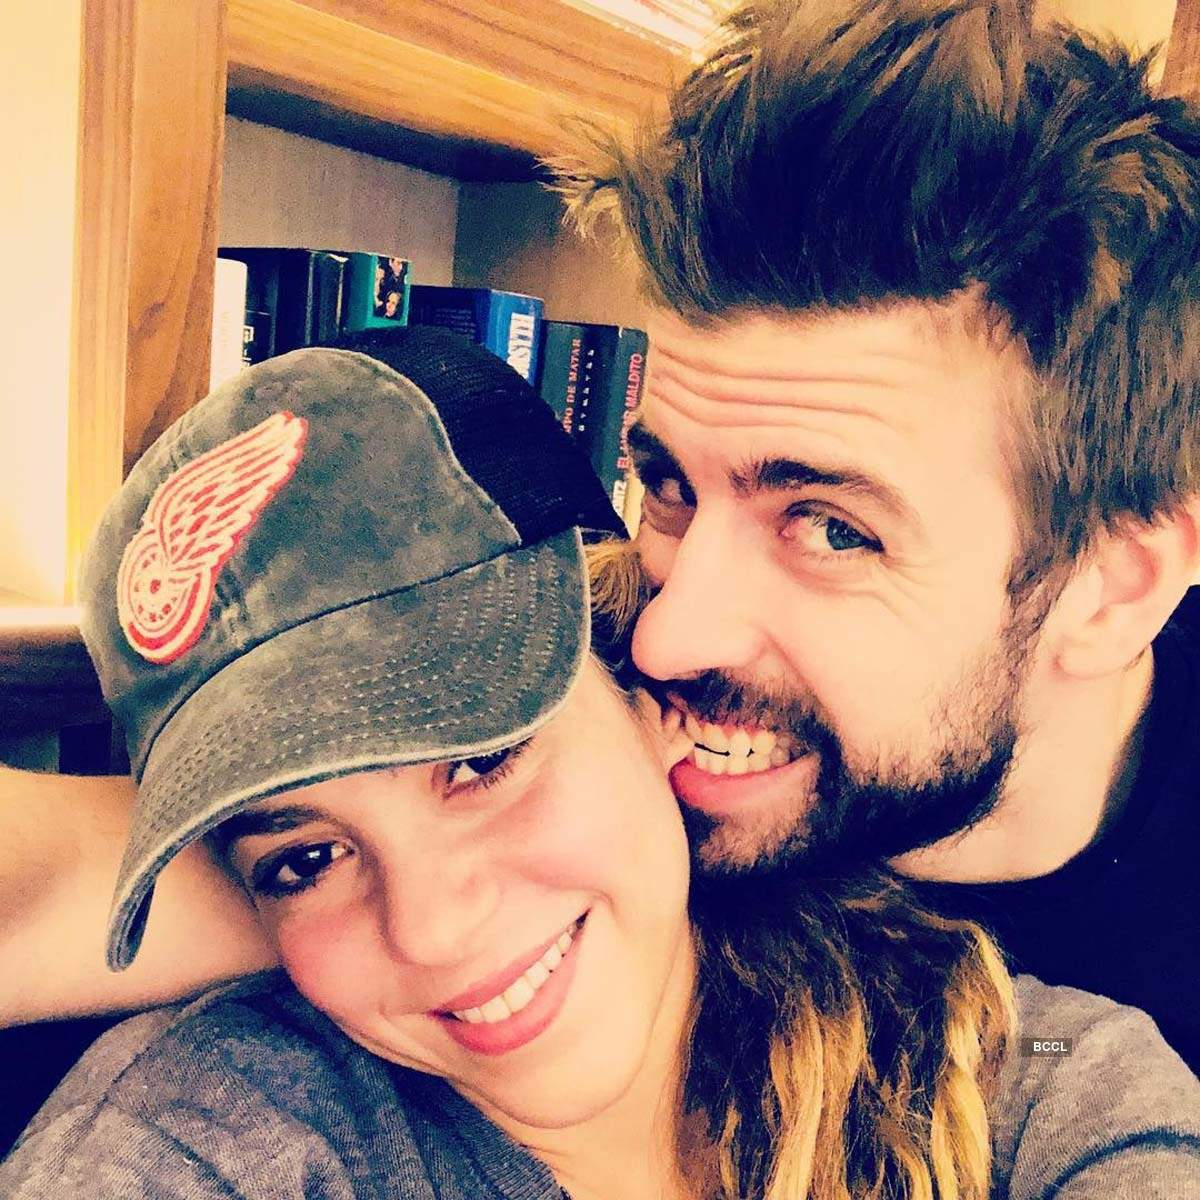 Intimate pictures of Shakira with longtime boyfriend footballer Gerard Pique